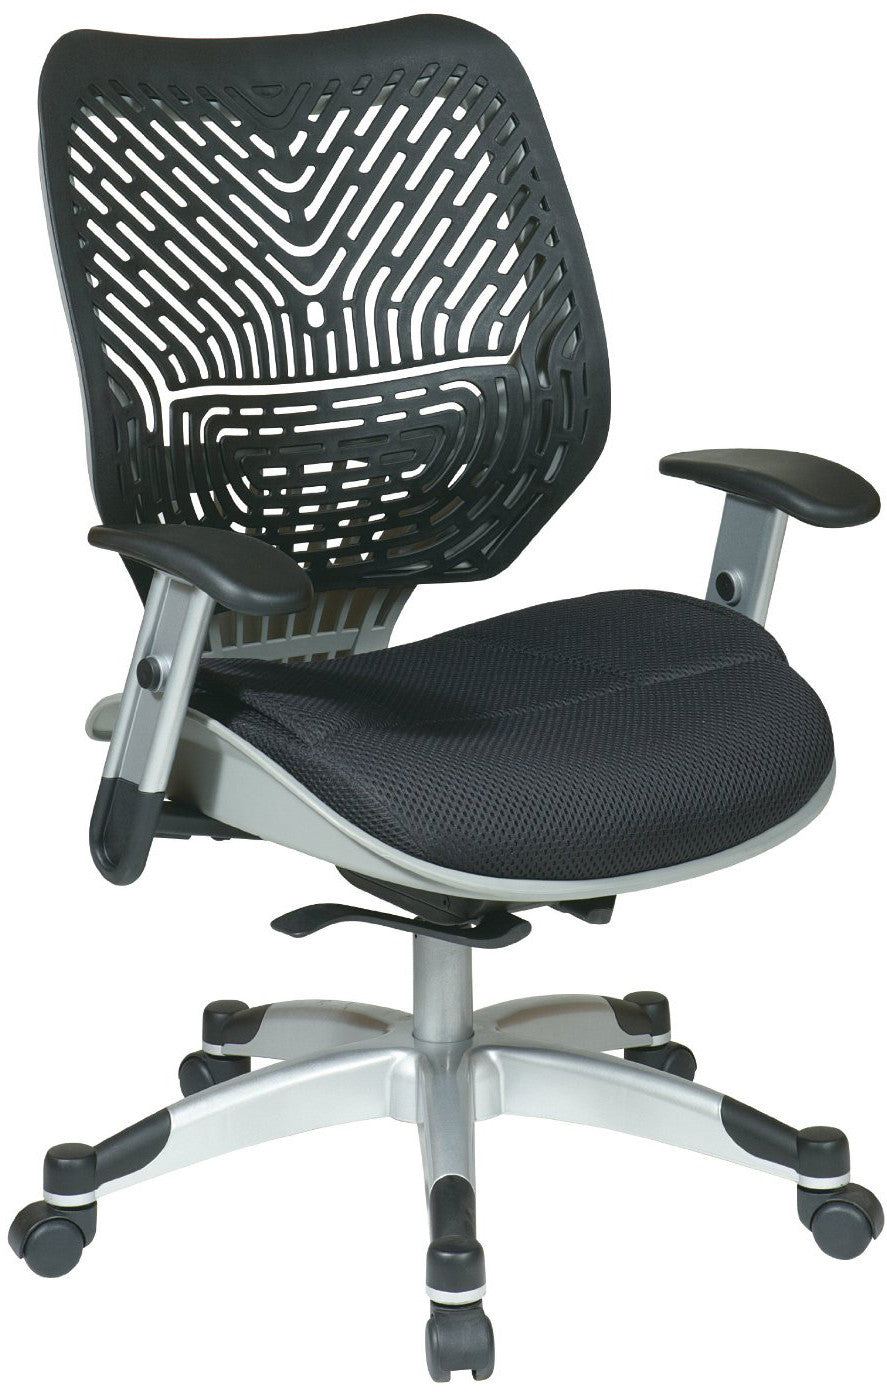 Office Star Space Seating 86-M33C625R Unique Self Adjusting Raven SpaceFlex® and Raven Mesh Seat Managers Chair